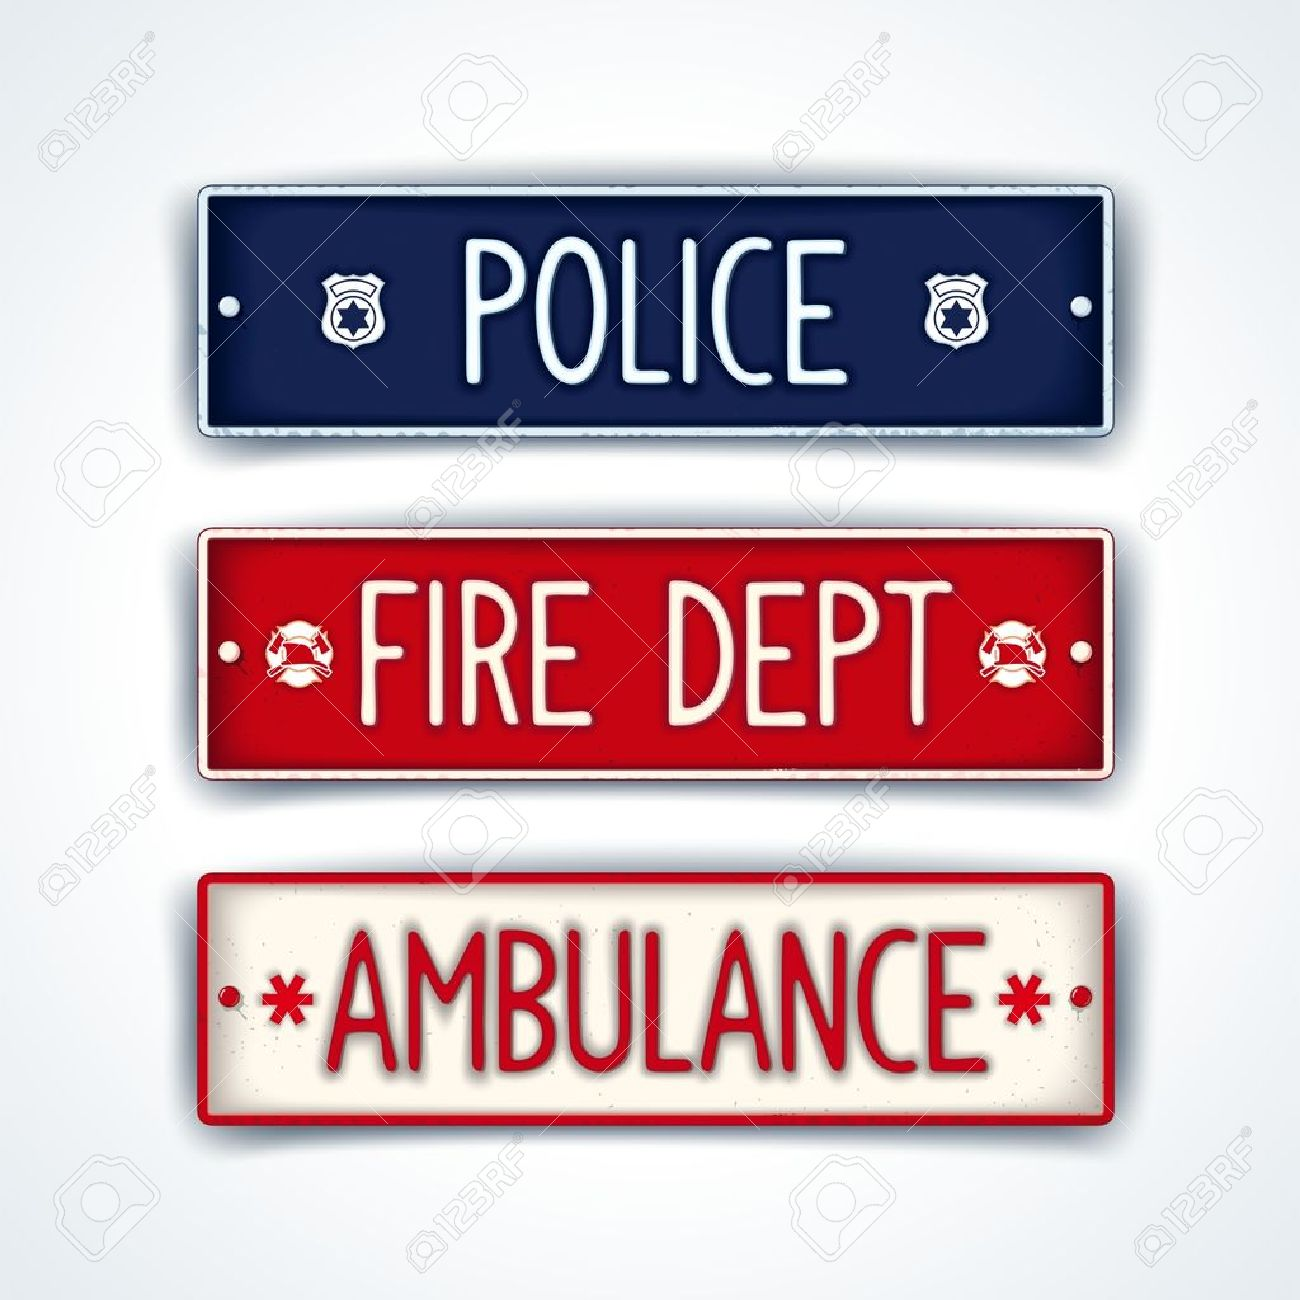 Ñar License Plate For Emergency Services.